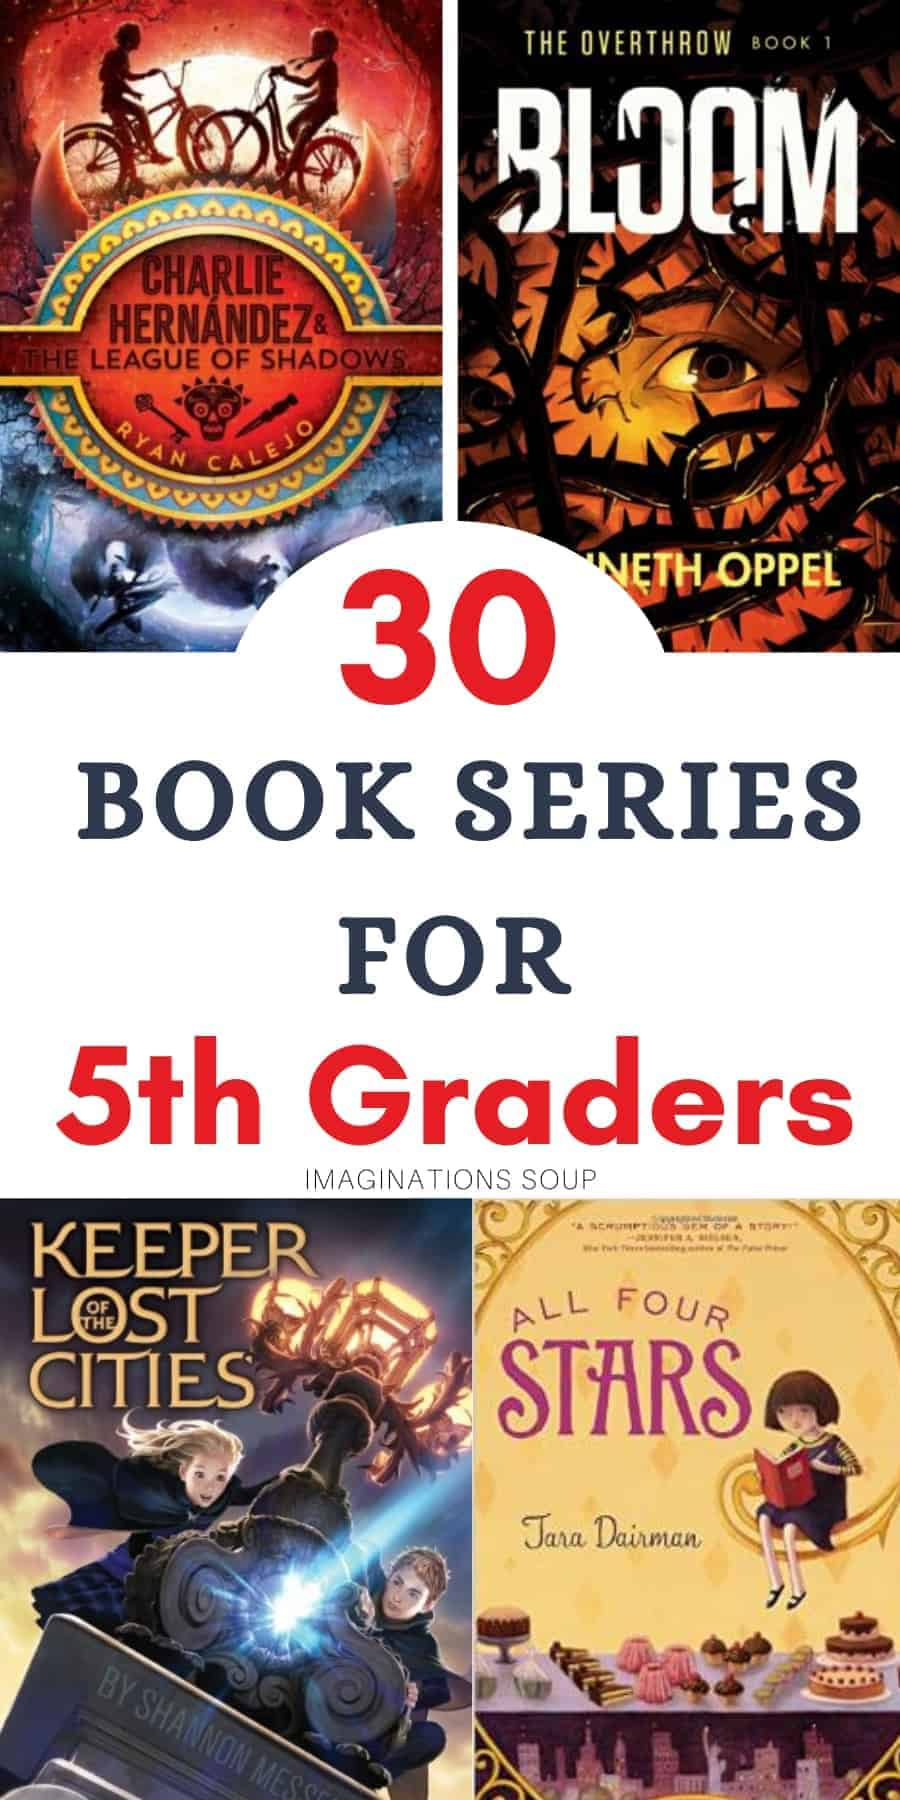 30 book series for 5th graders